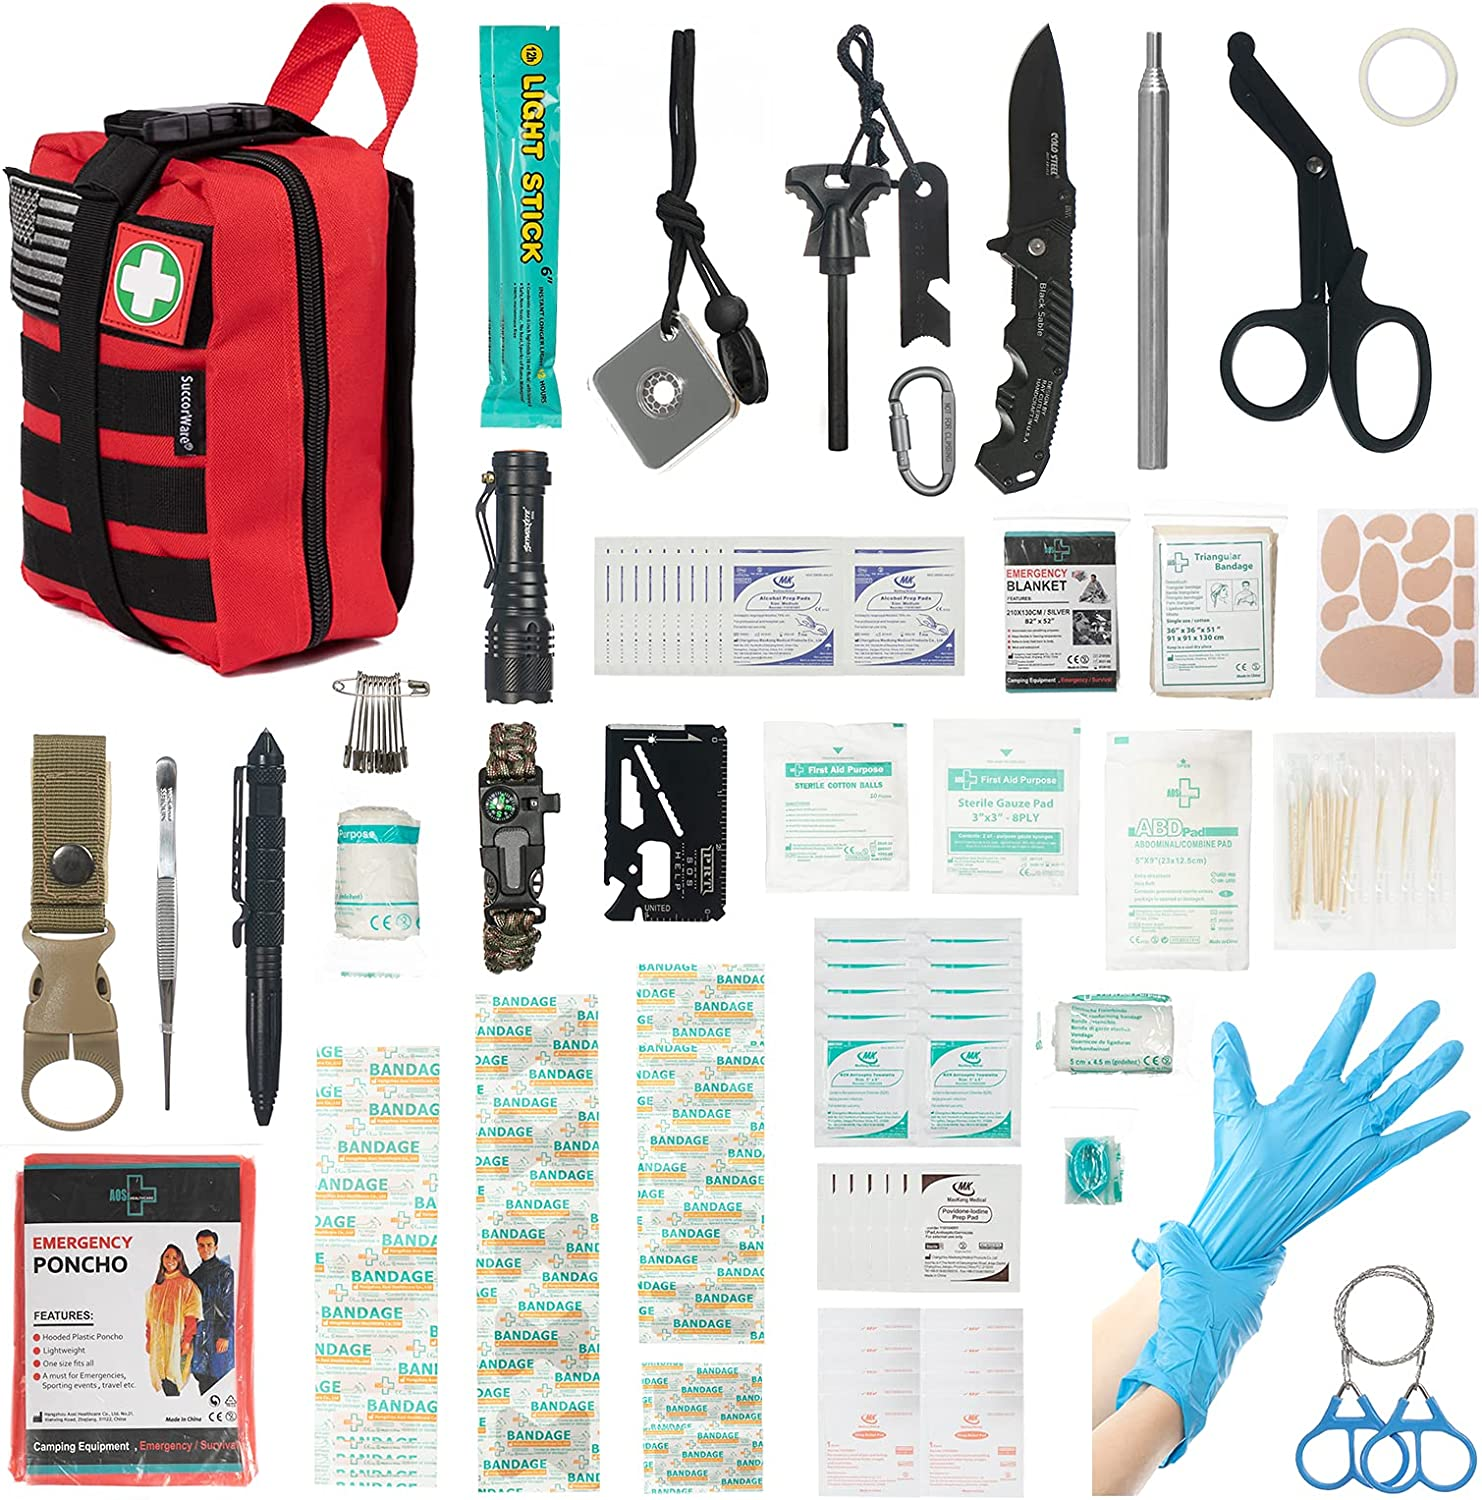 low-pricing 235 Pieces First Aid Items Kit Survival Excellence Multi-Purpose Gear and